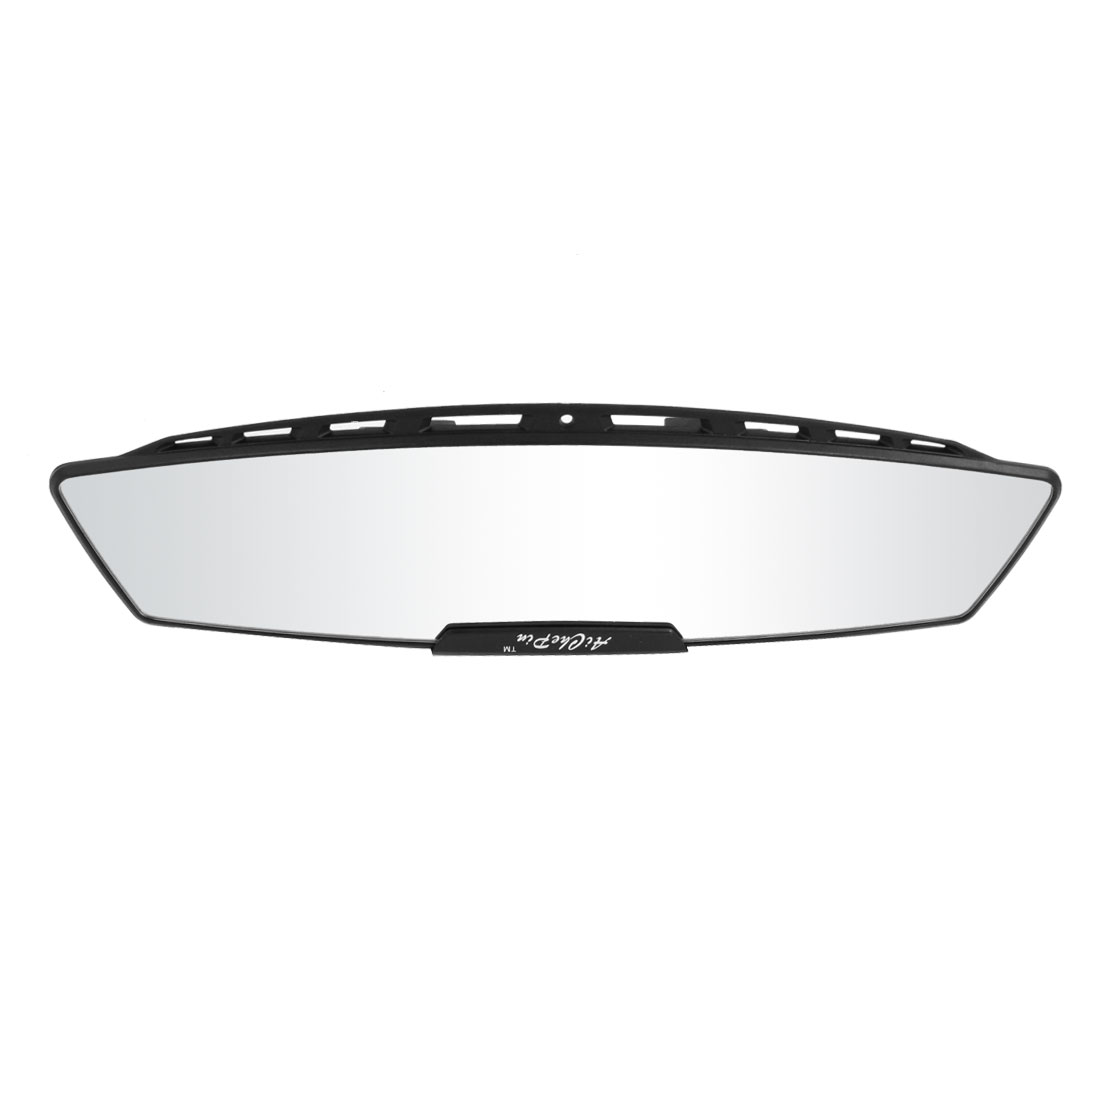 300mm Wide Curved Interior Clip On Rear View Mirror Black for Car Truck